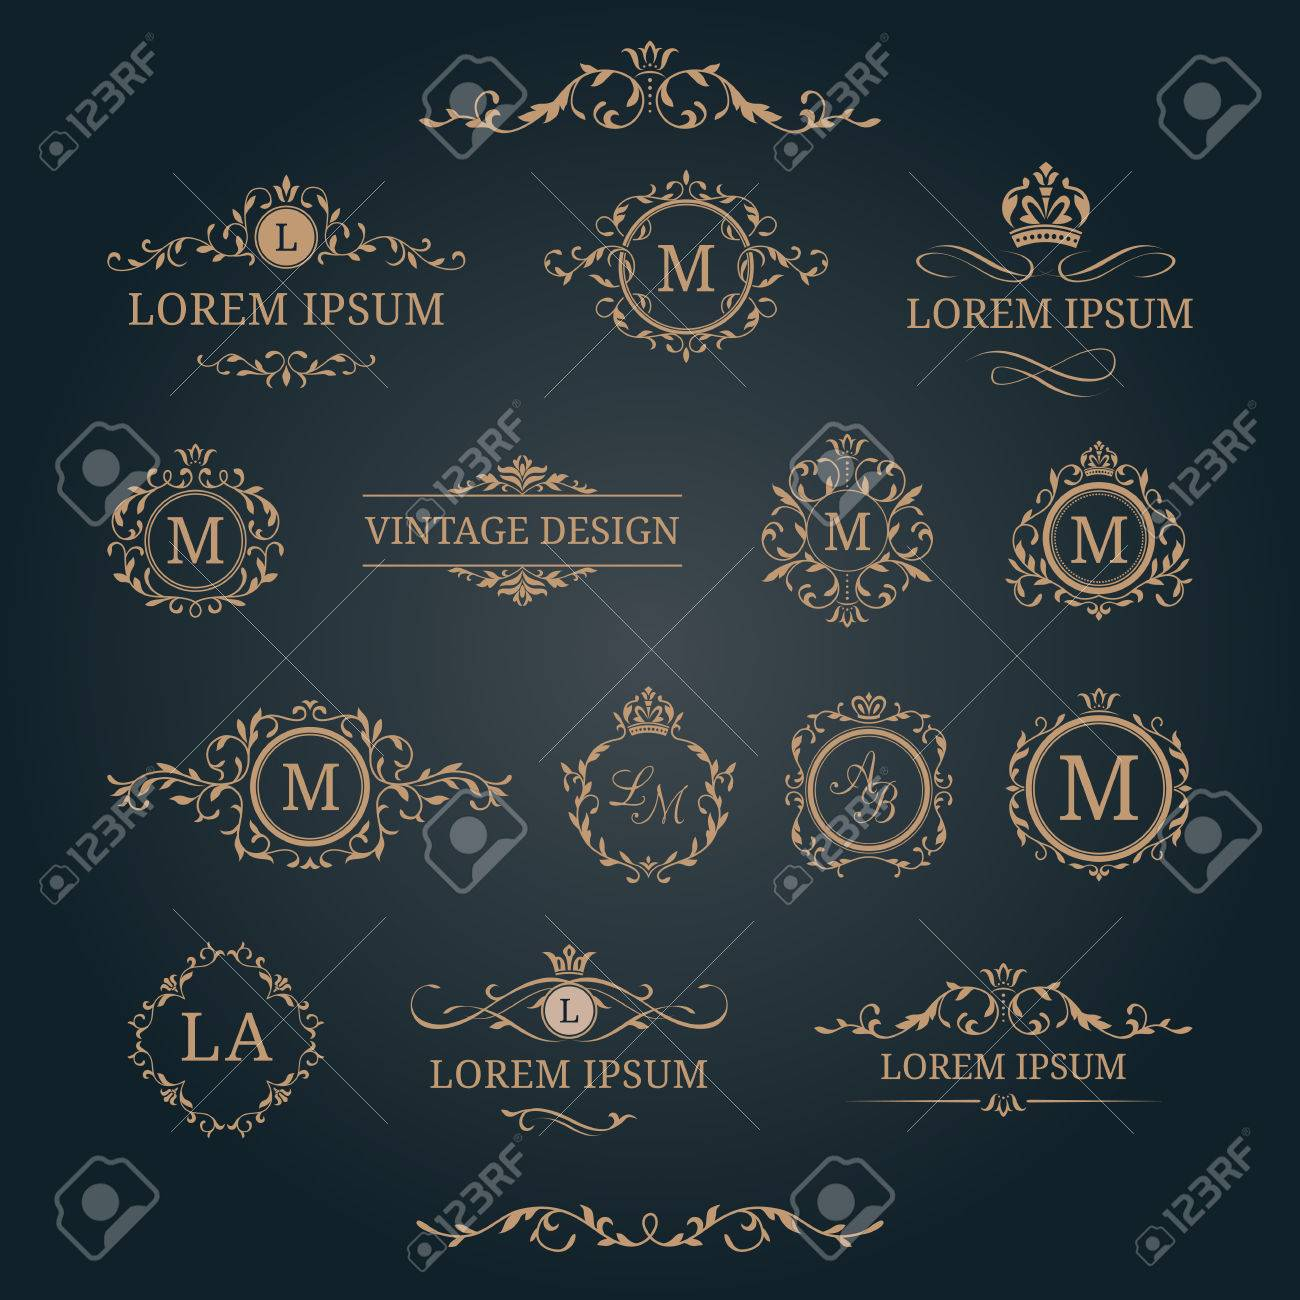 elegant floral monograms and decorative elements design templates